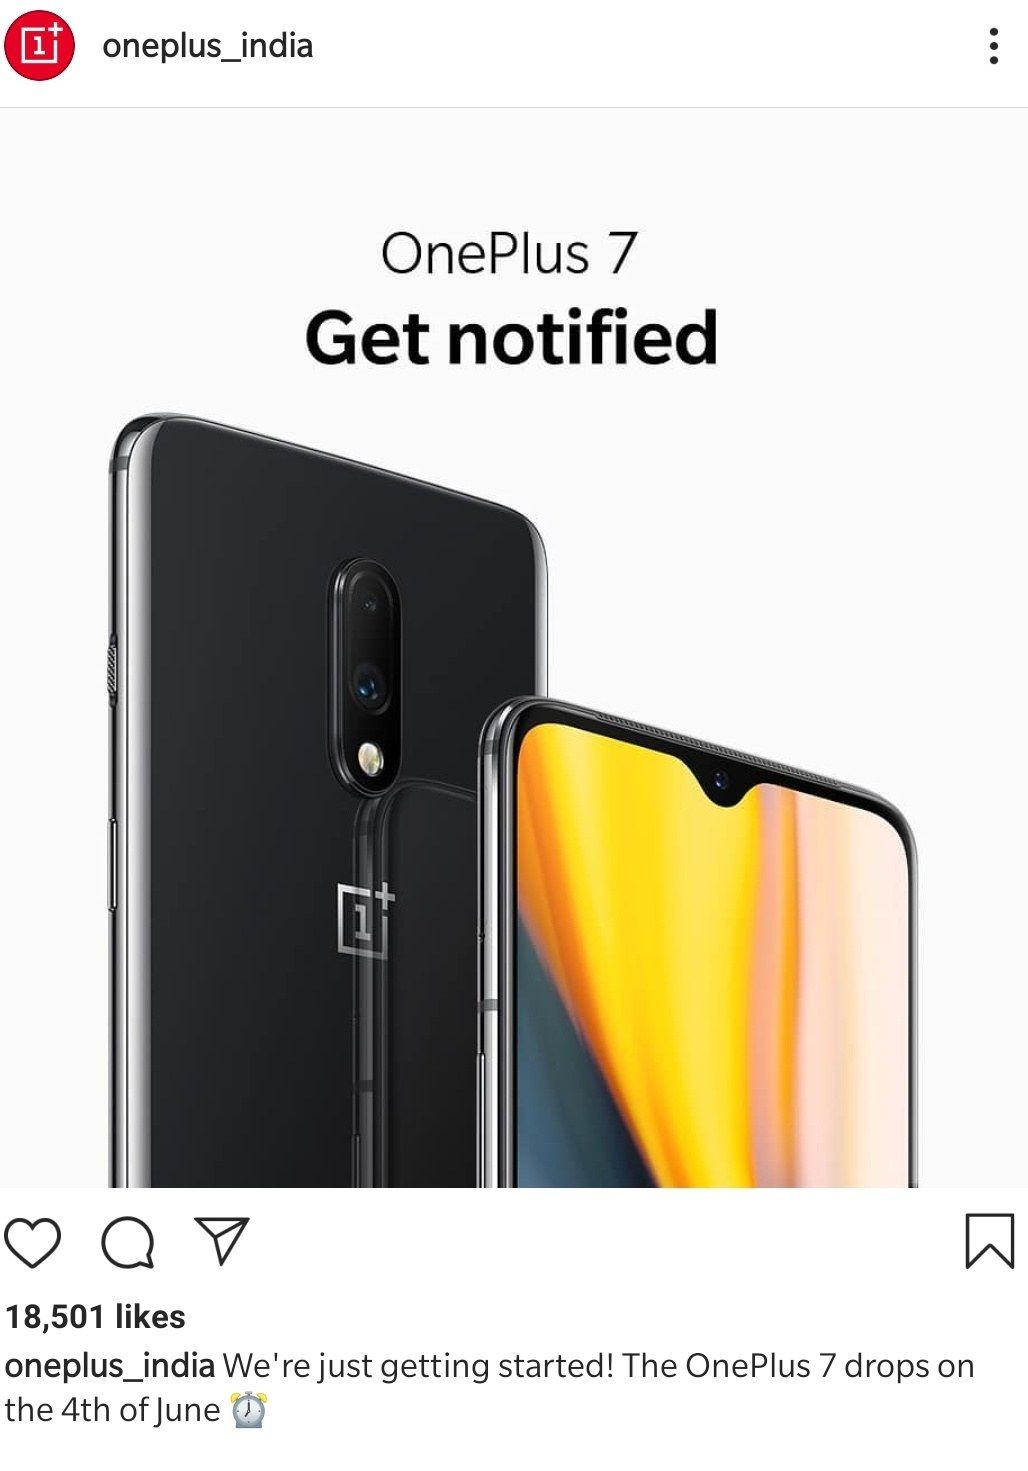 Any updates on the OnePlus 7 India launch date - OnePlus